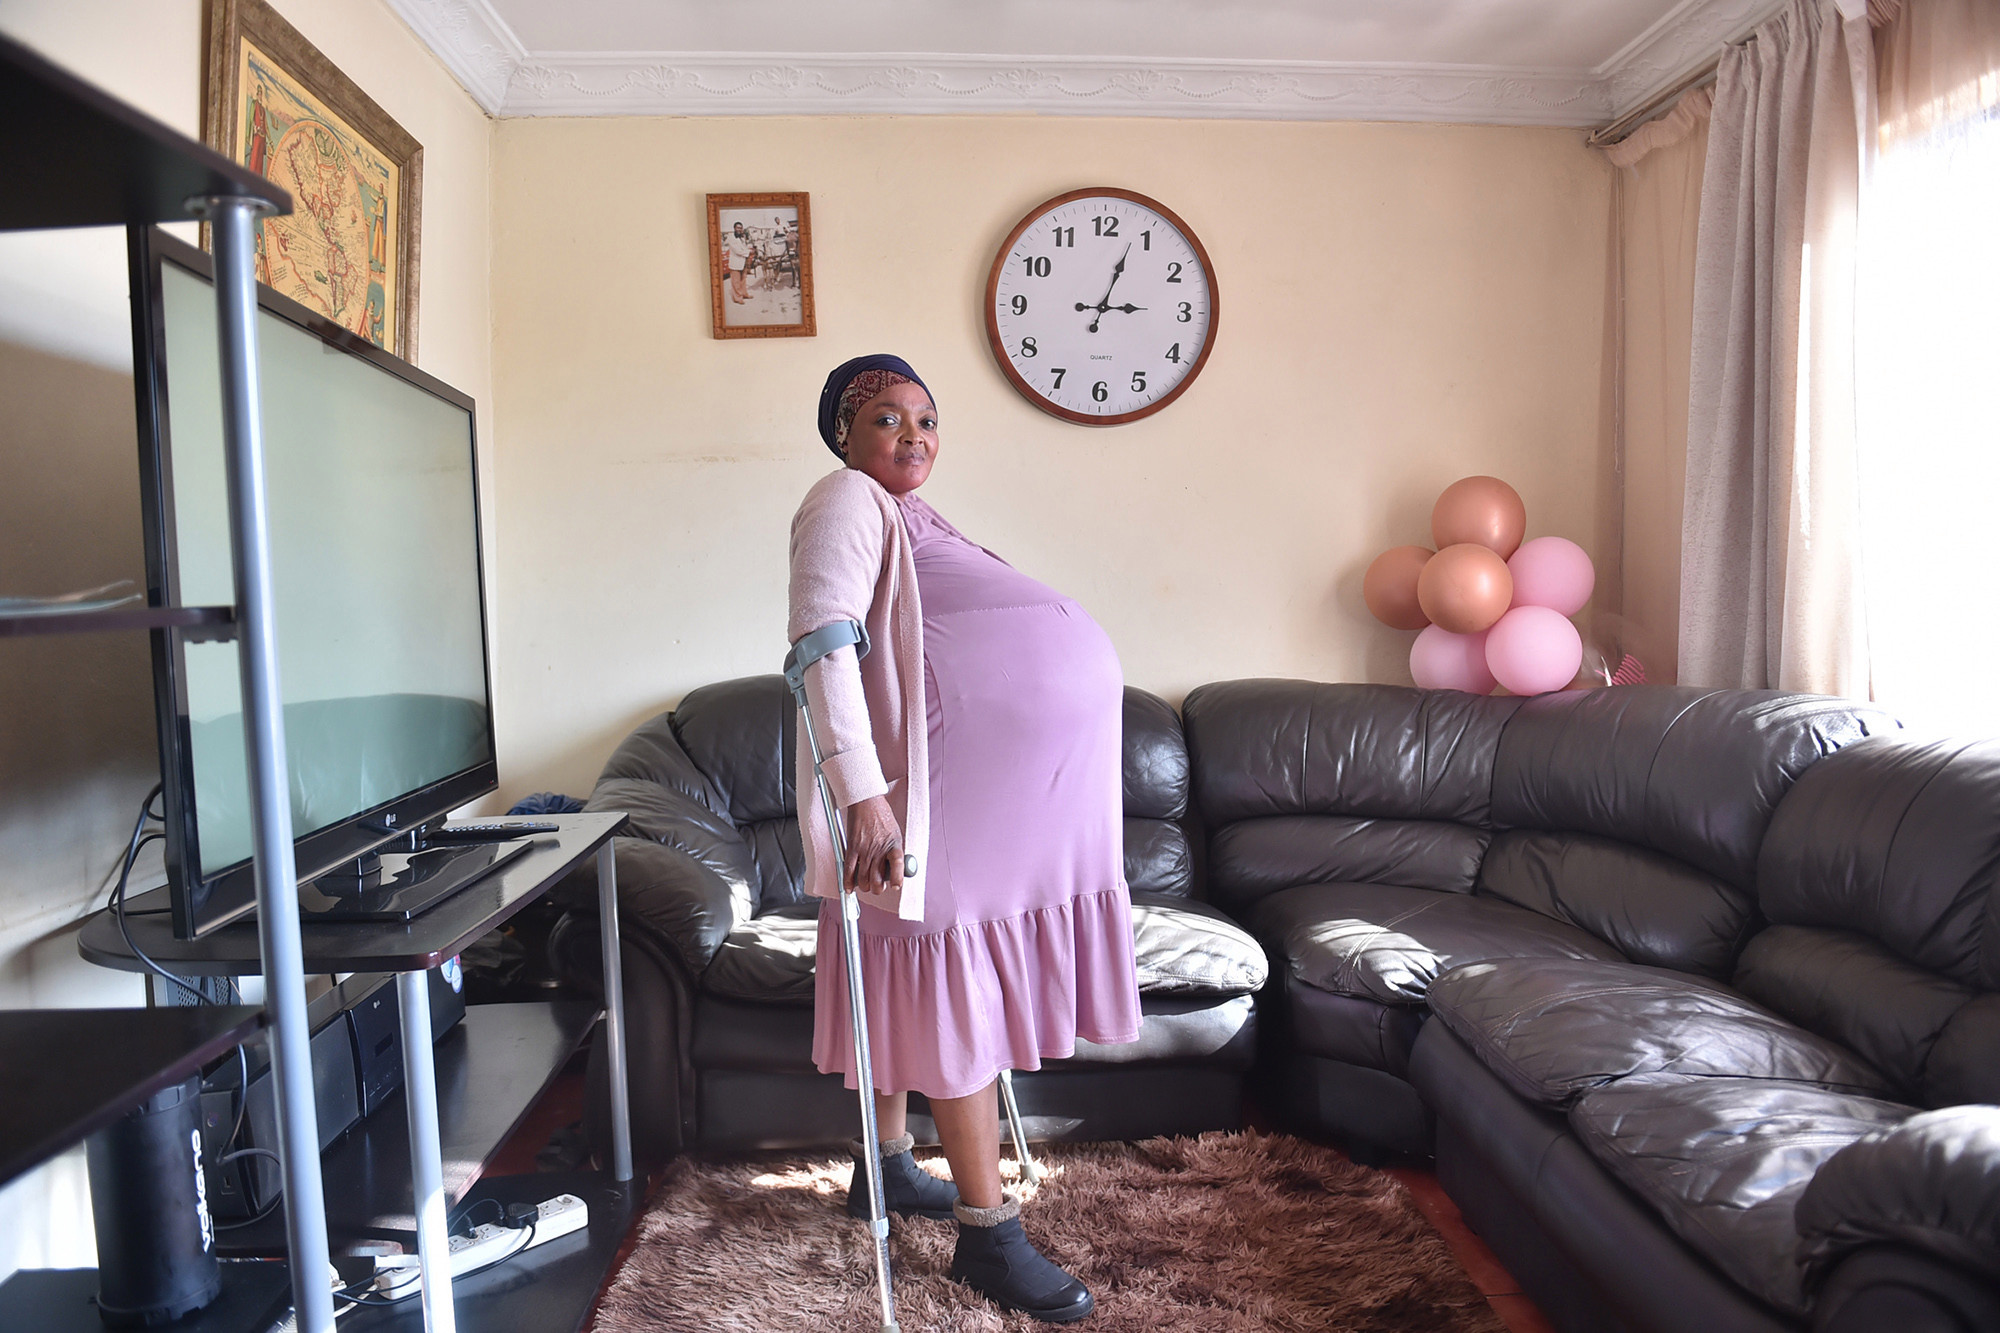 Gosiame Thamara Sithole said her pregnancy was natural and had not received any fertility treatment.